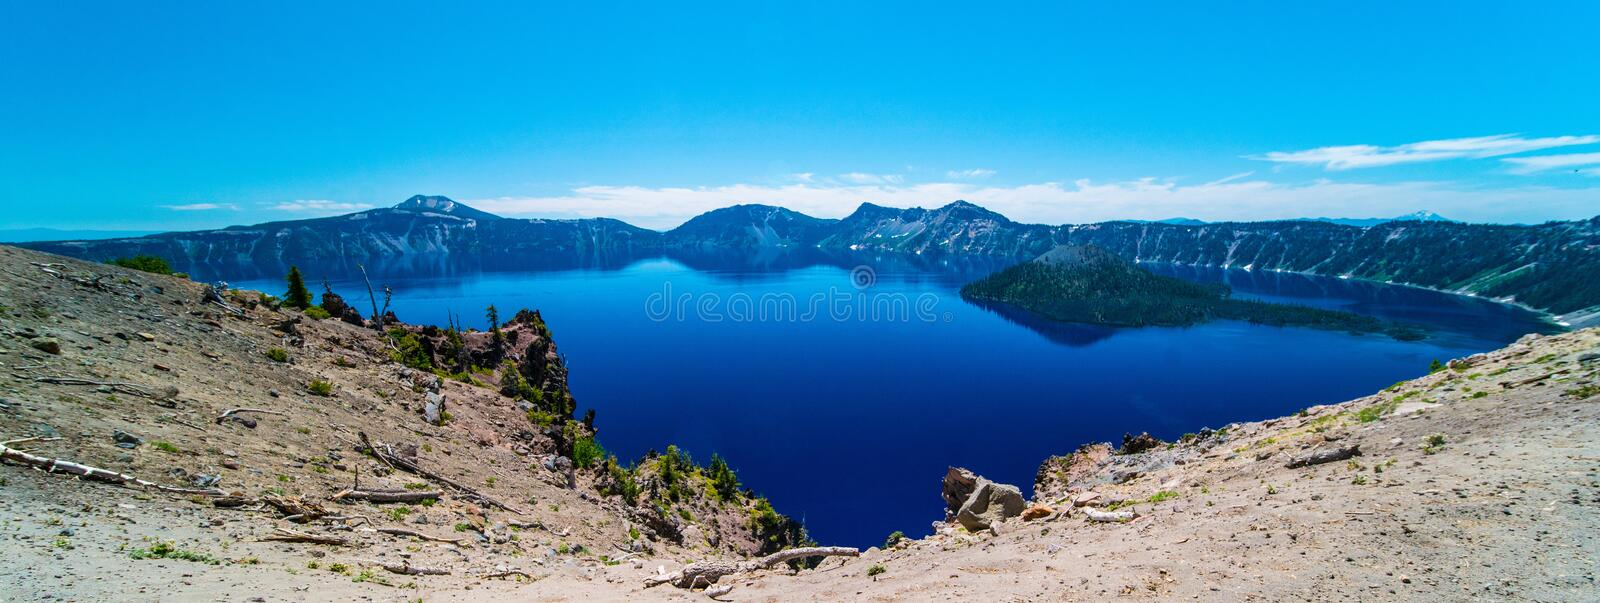 Crater Lake in Oregon royalty free stock photo